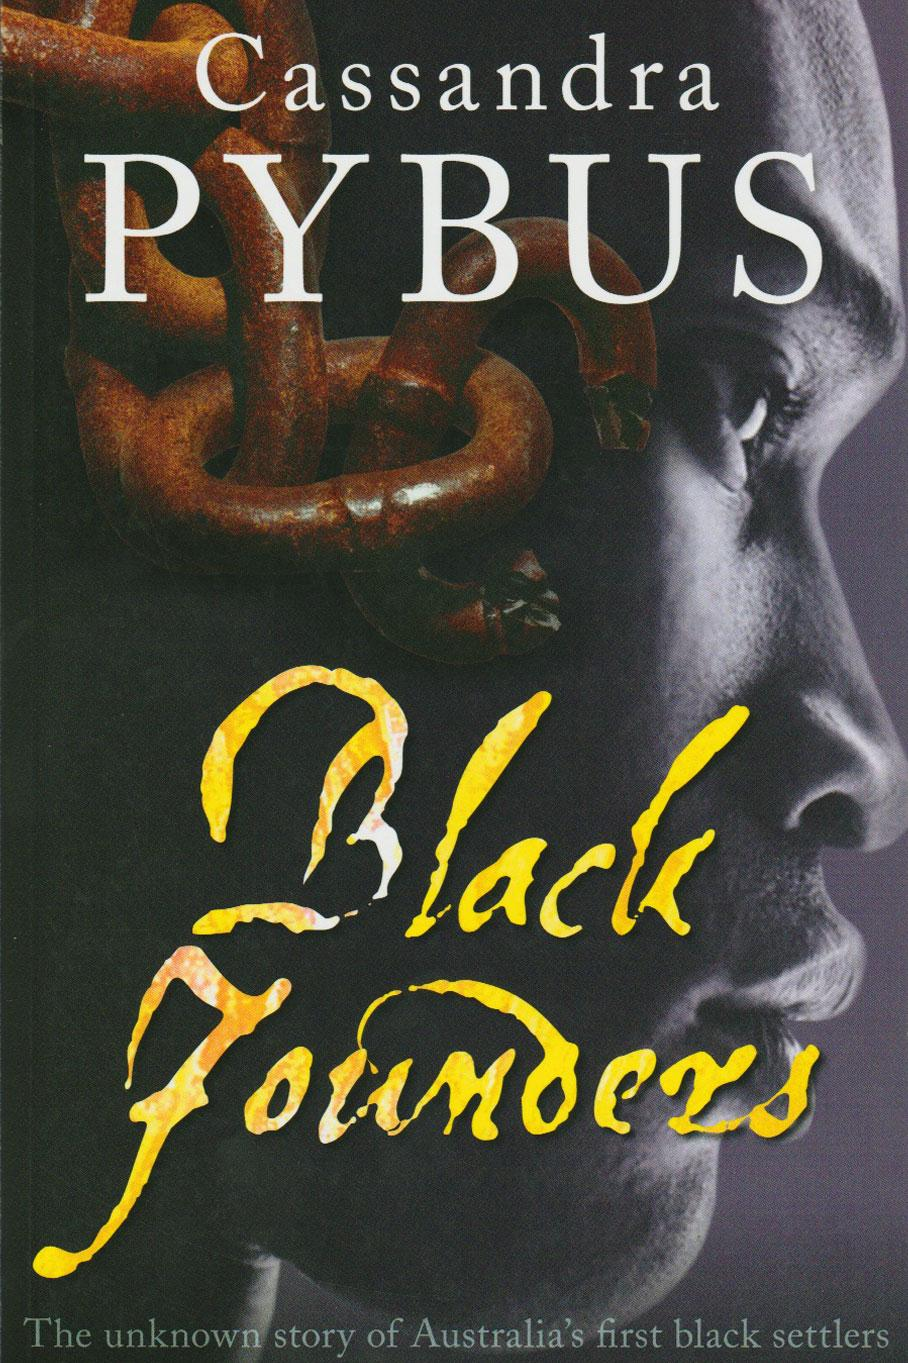 Black Founders - the unknown story of Australia's first black settlers